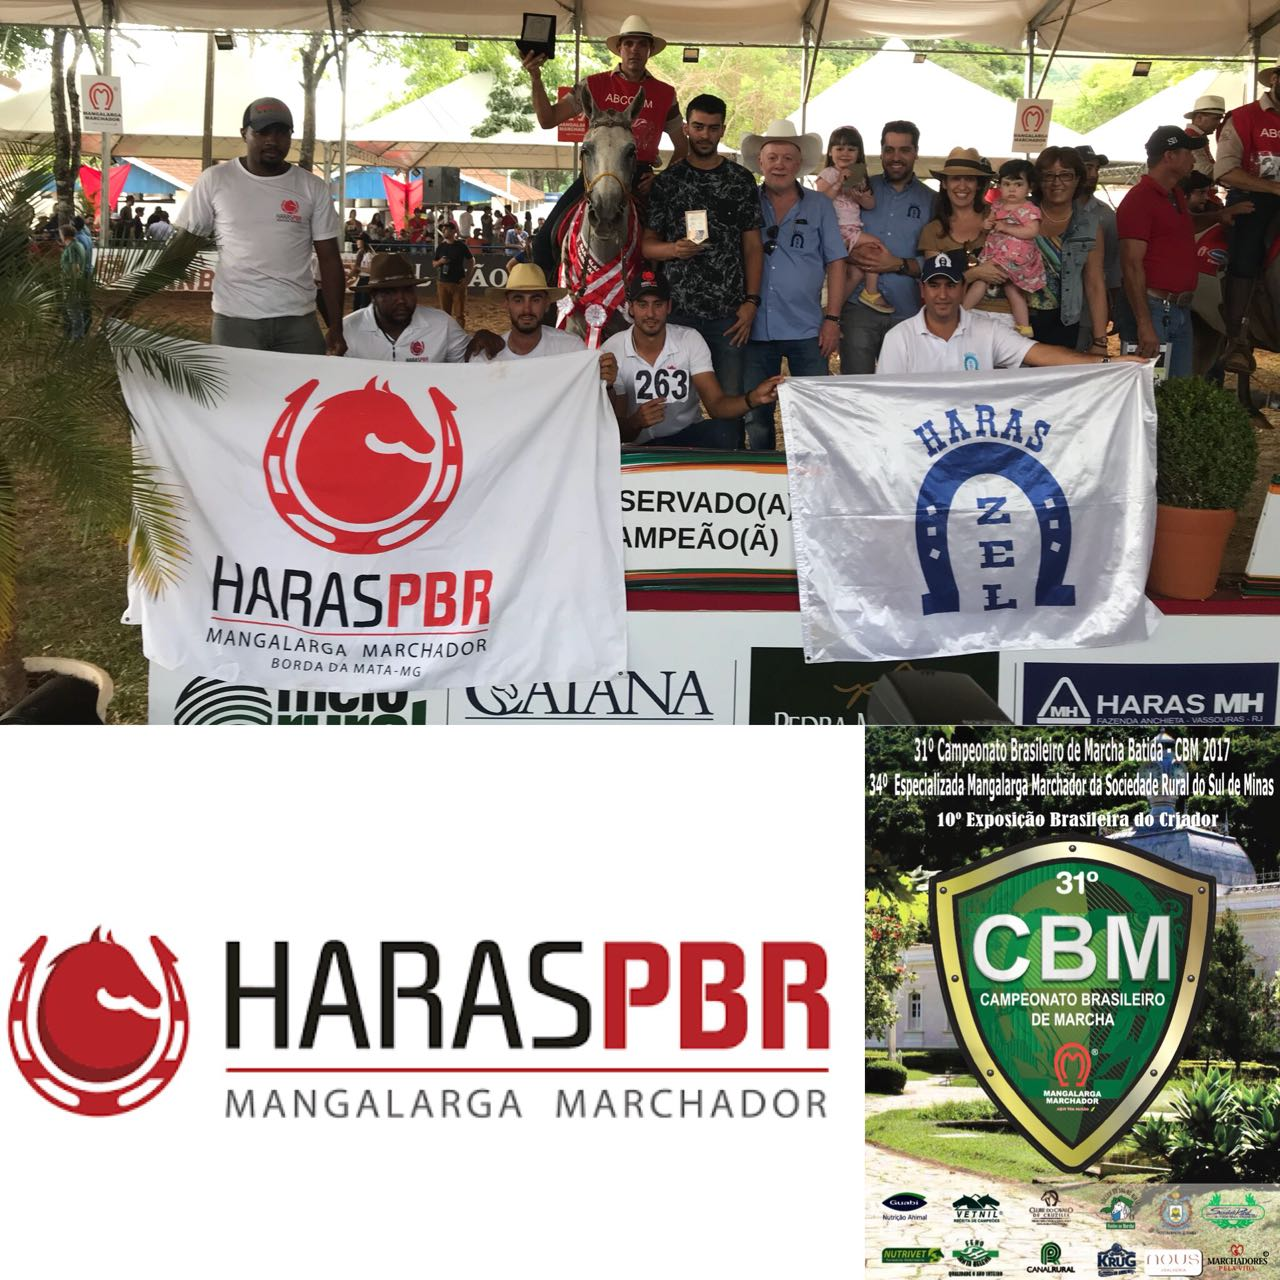 31ª CBM MARCHA BATIDA & XXXIV ESPEC. DO MM DA SOC.RURAL DO SUL DE MINAS - CAXAMBU ,MG